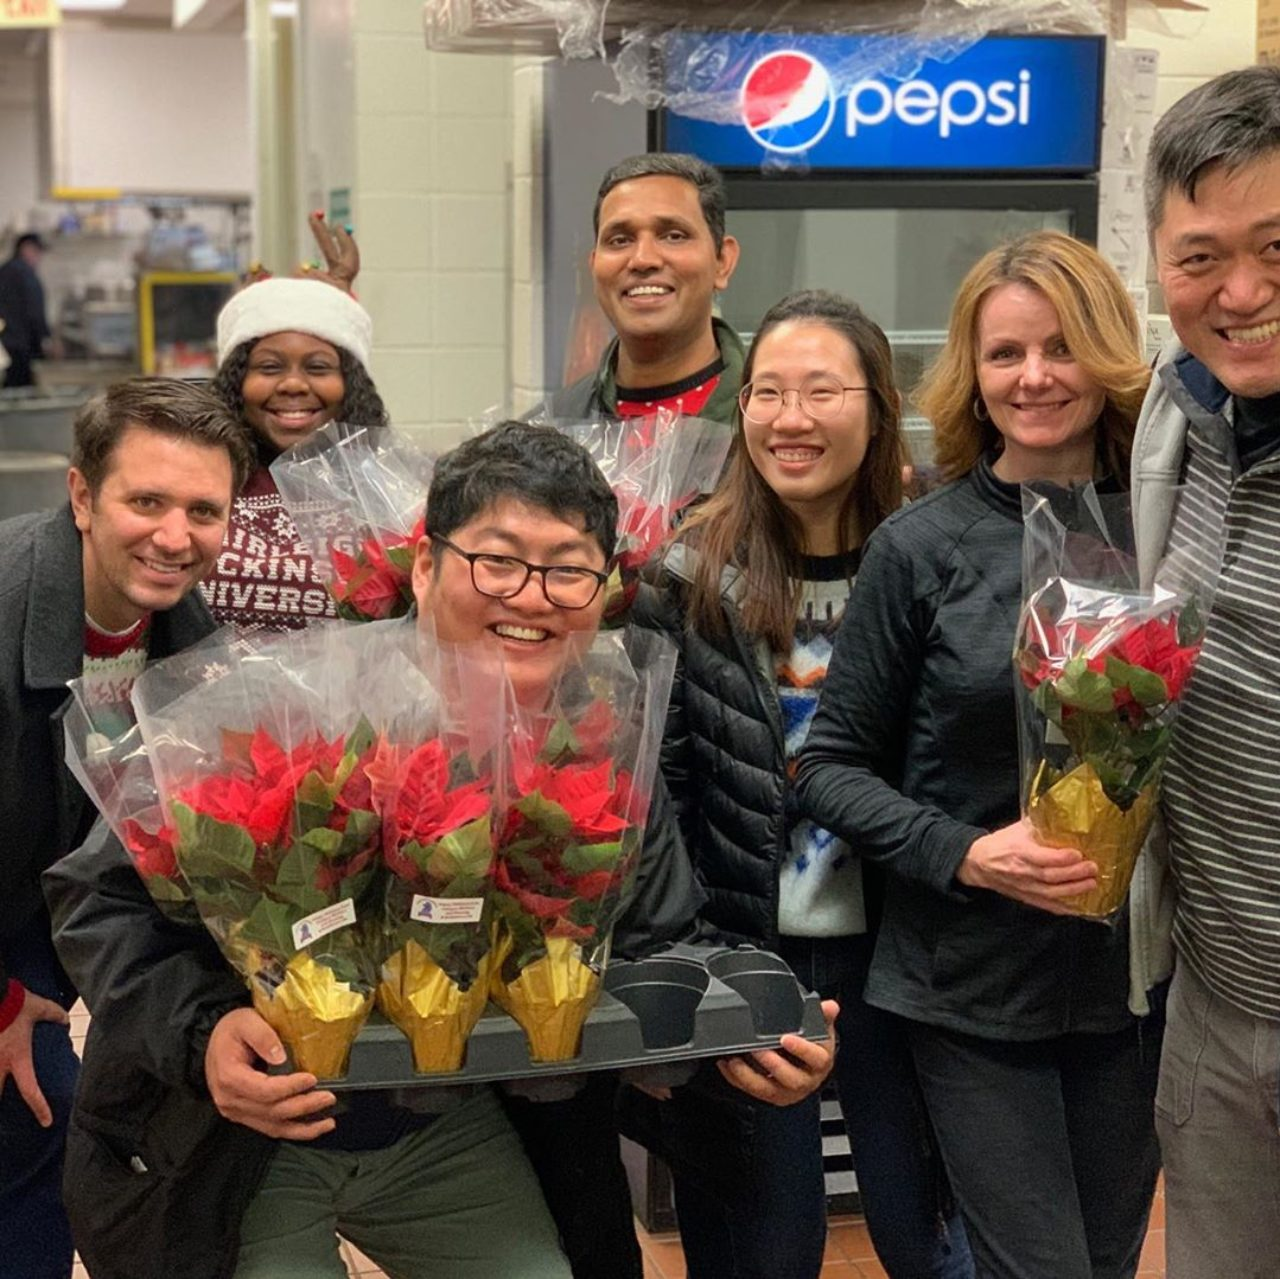 A group of students pose for a photo while holding poinsettias.